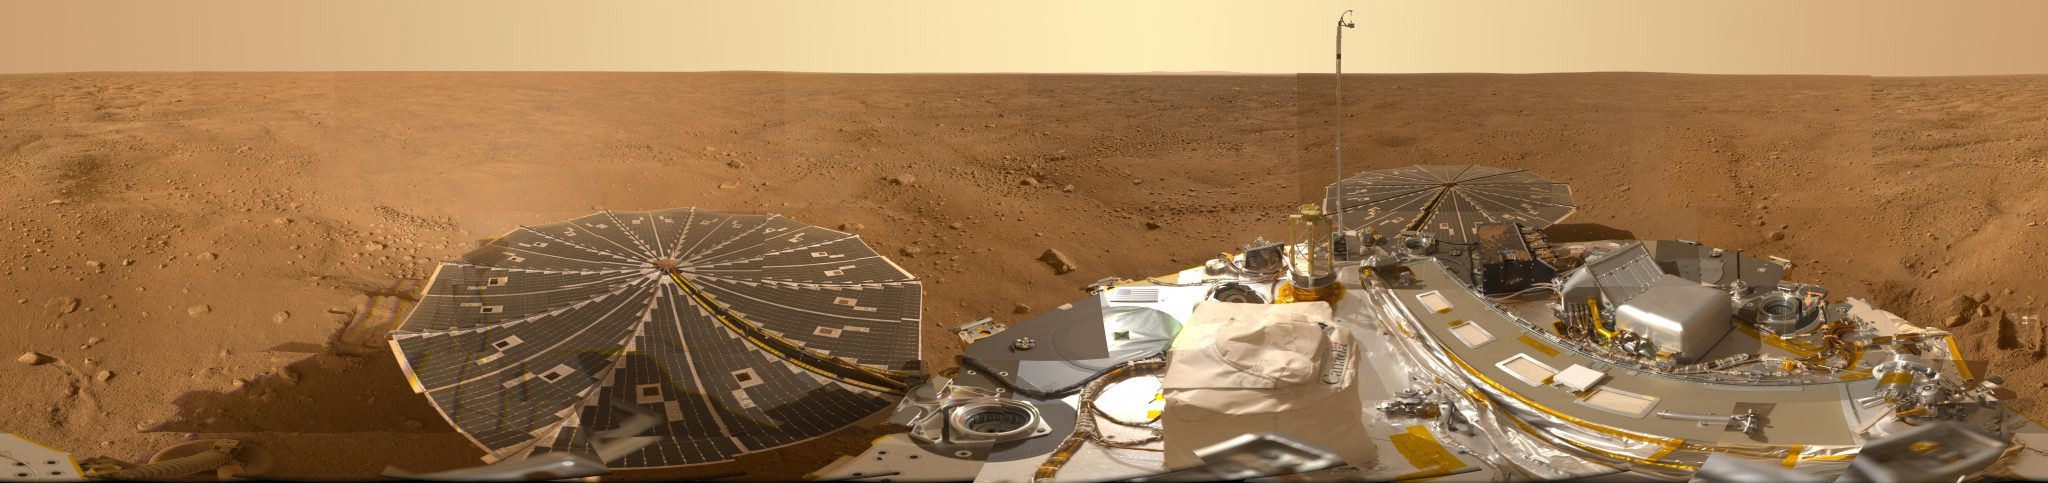 wide angle view of mars with lander in the foreground